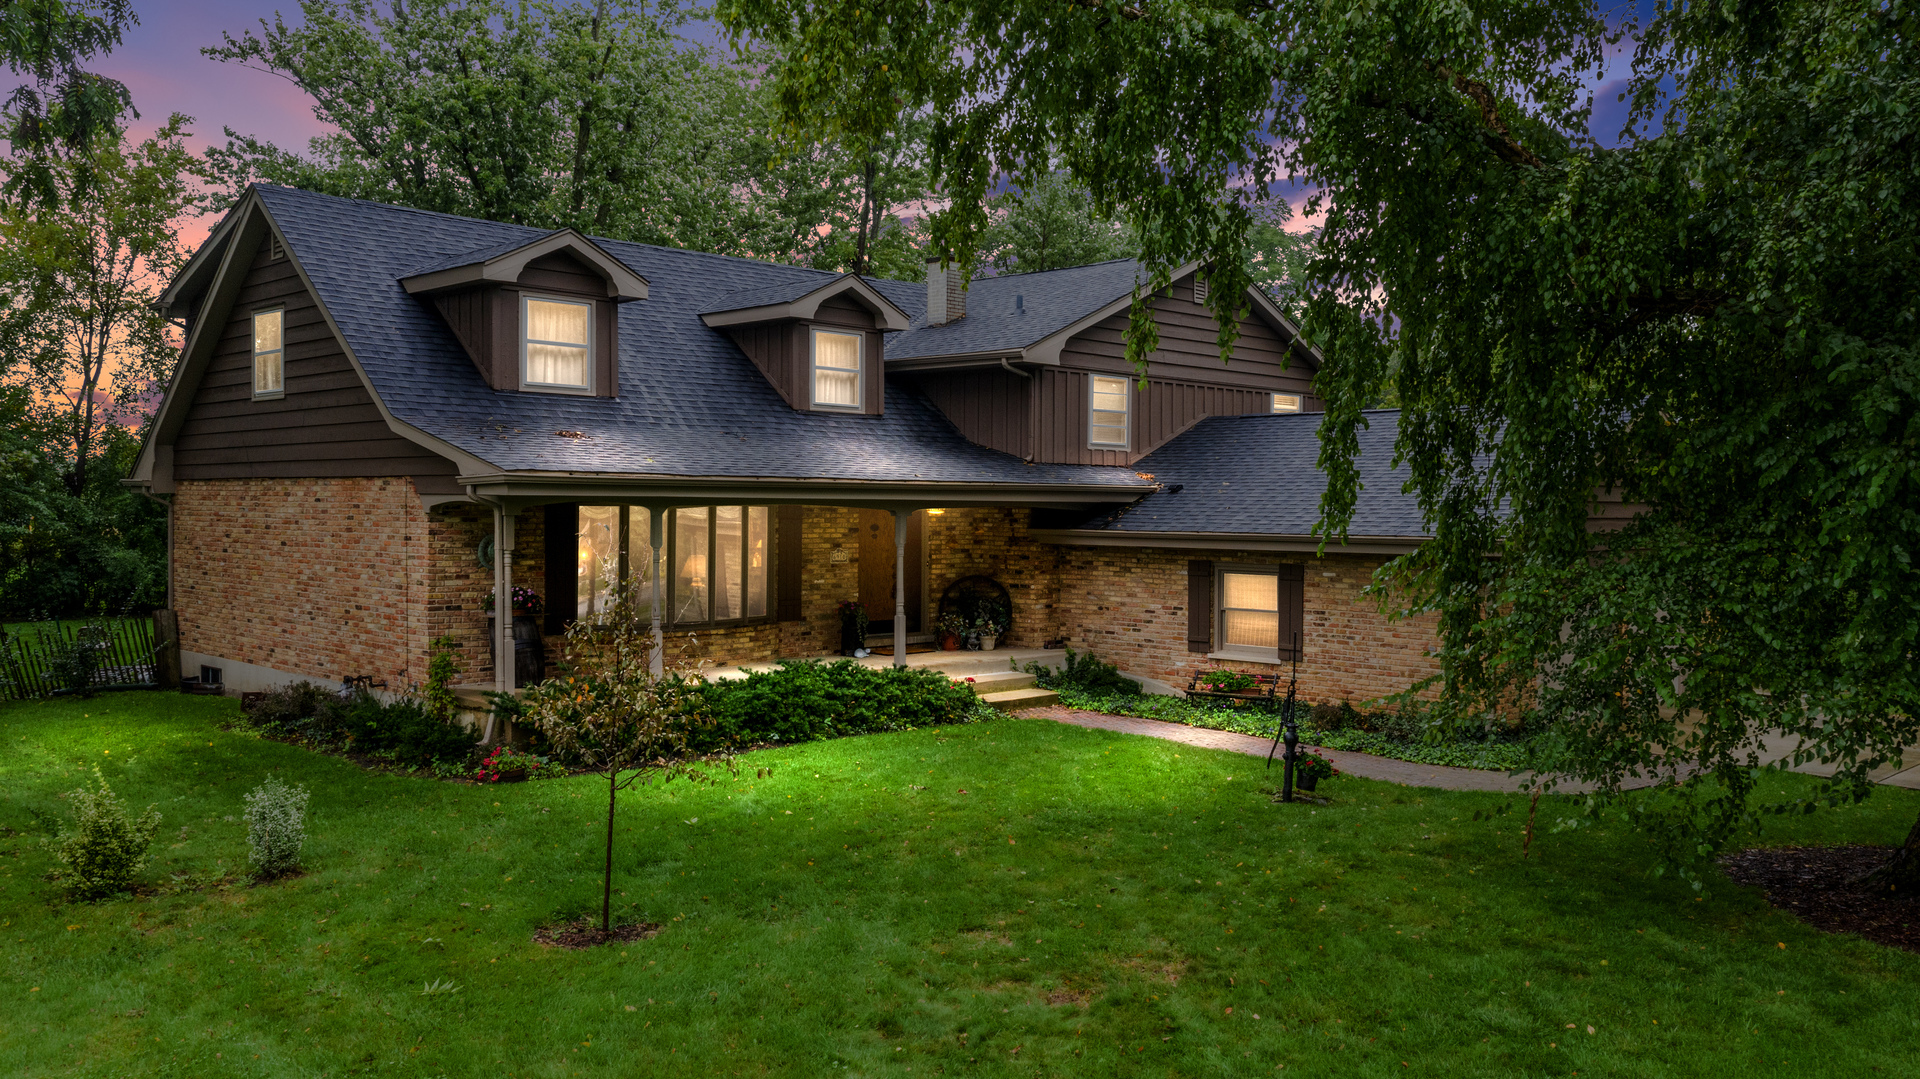 Photo for 6910 Webster Street, Downers Grove, IL 60516 (MLS # 10525362)